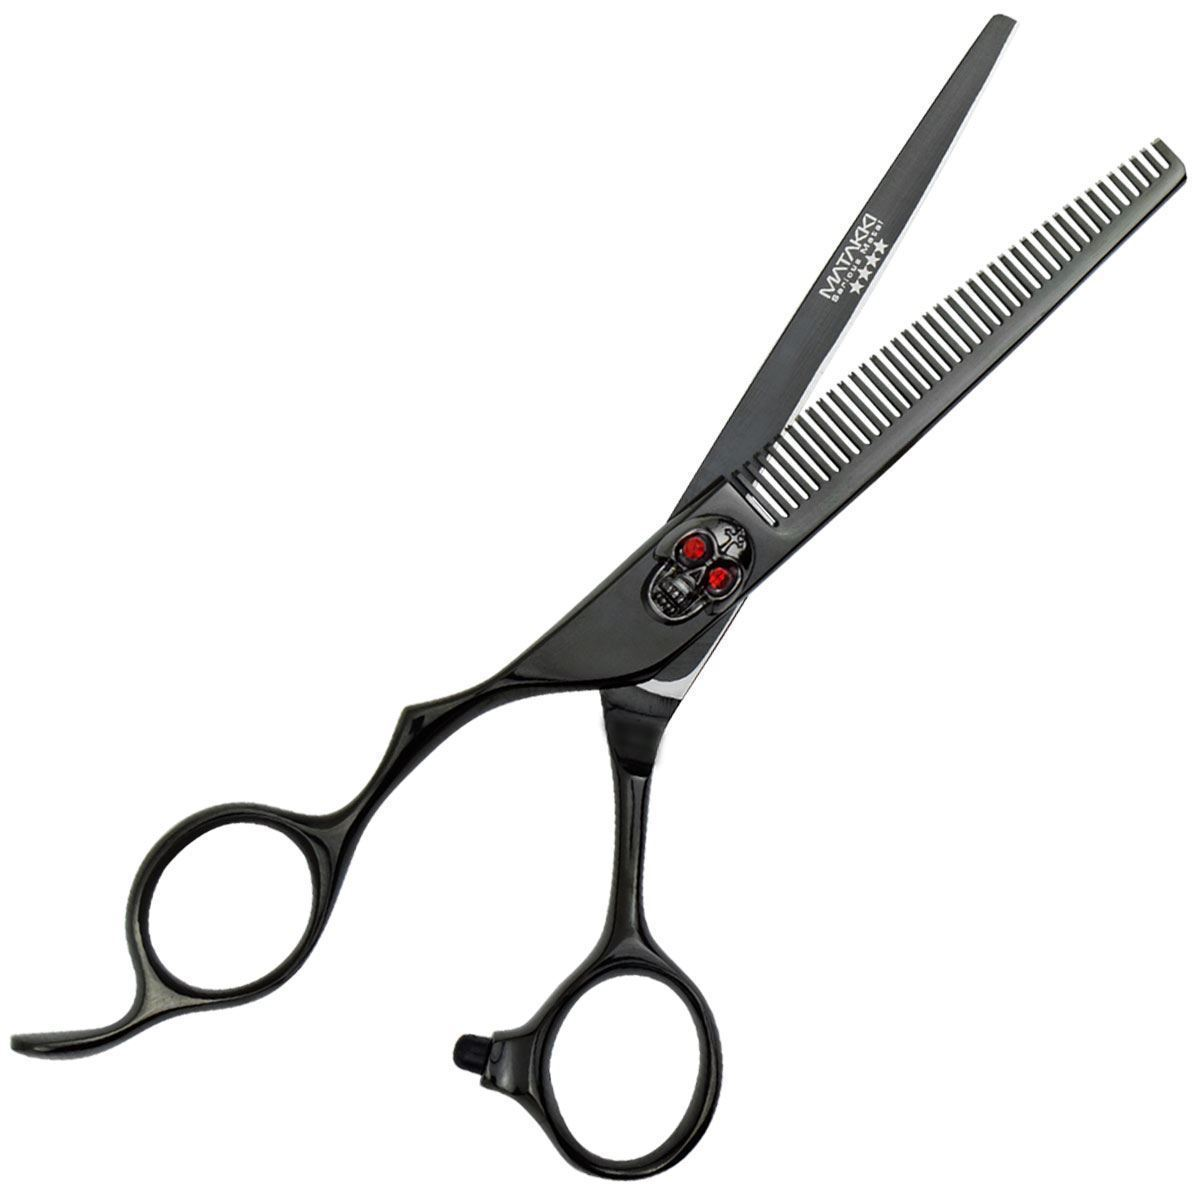 Picture of MATAKKI Reaper Lefty Professional Hair Thinning Scissors 6.0 Inches